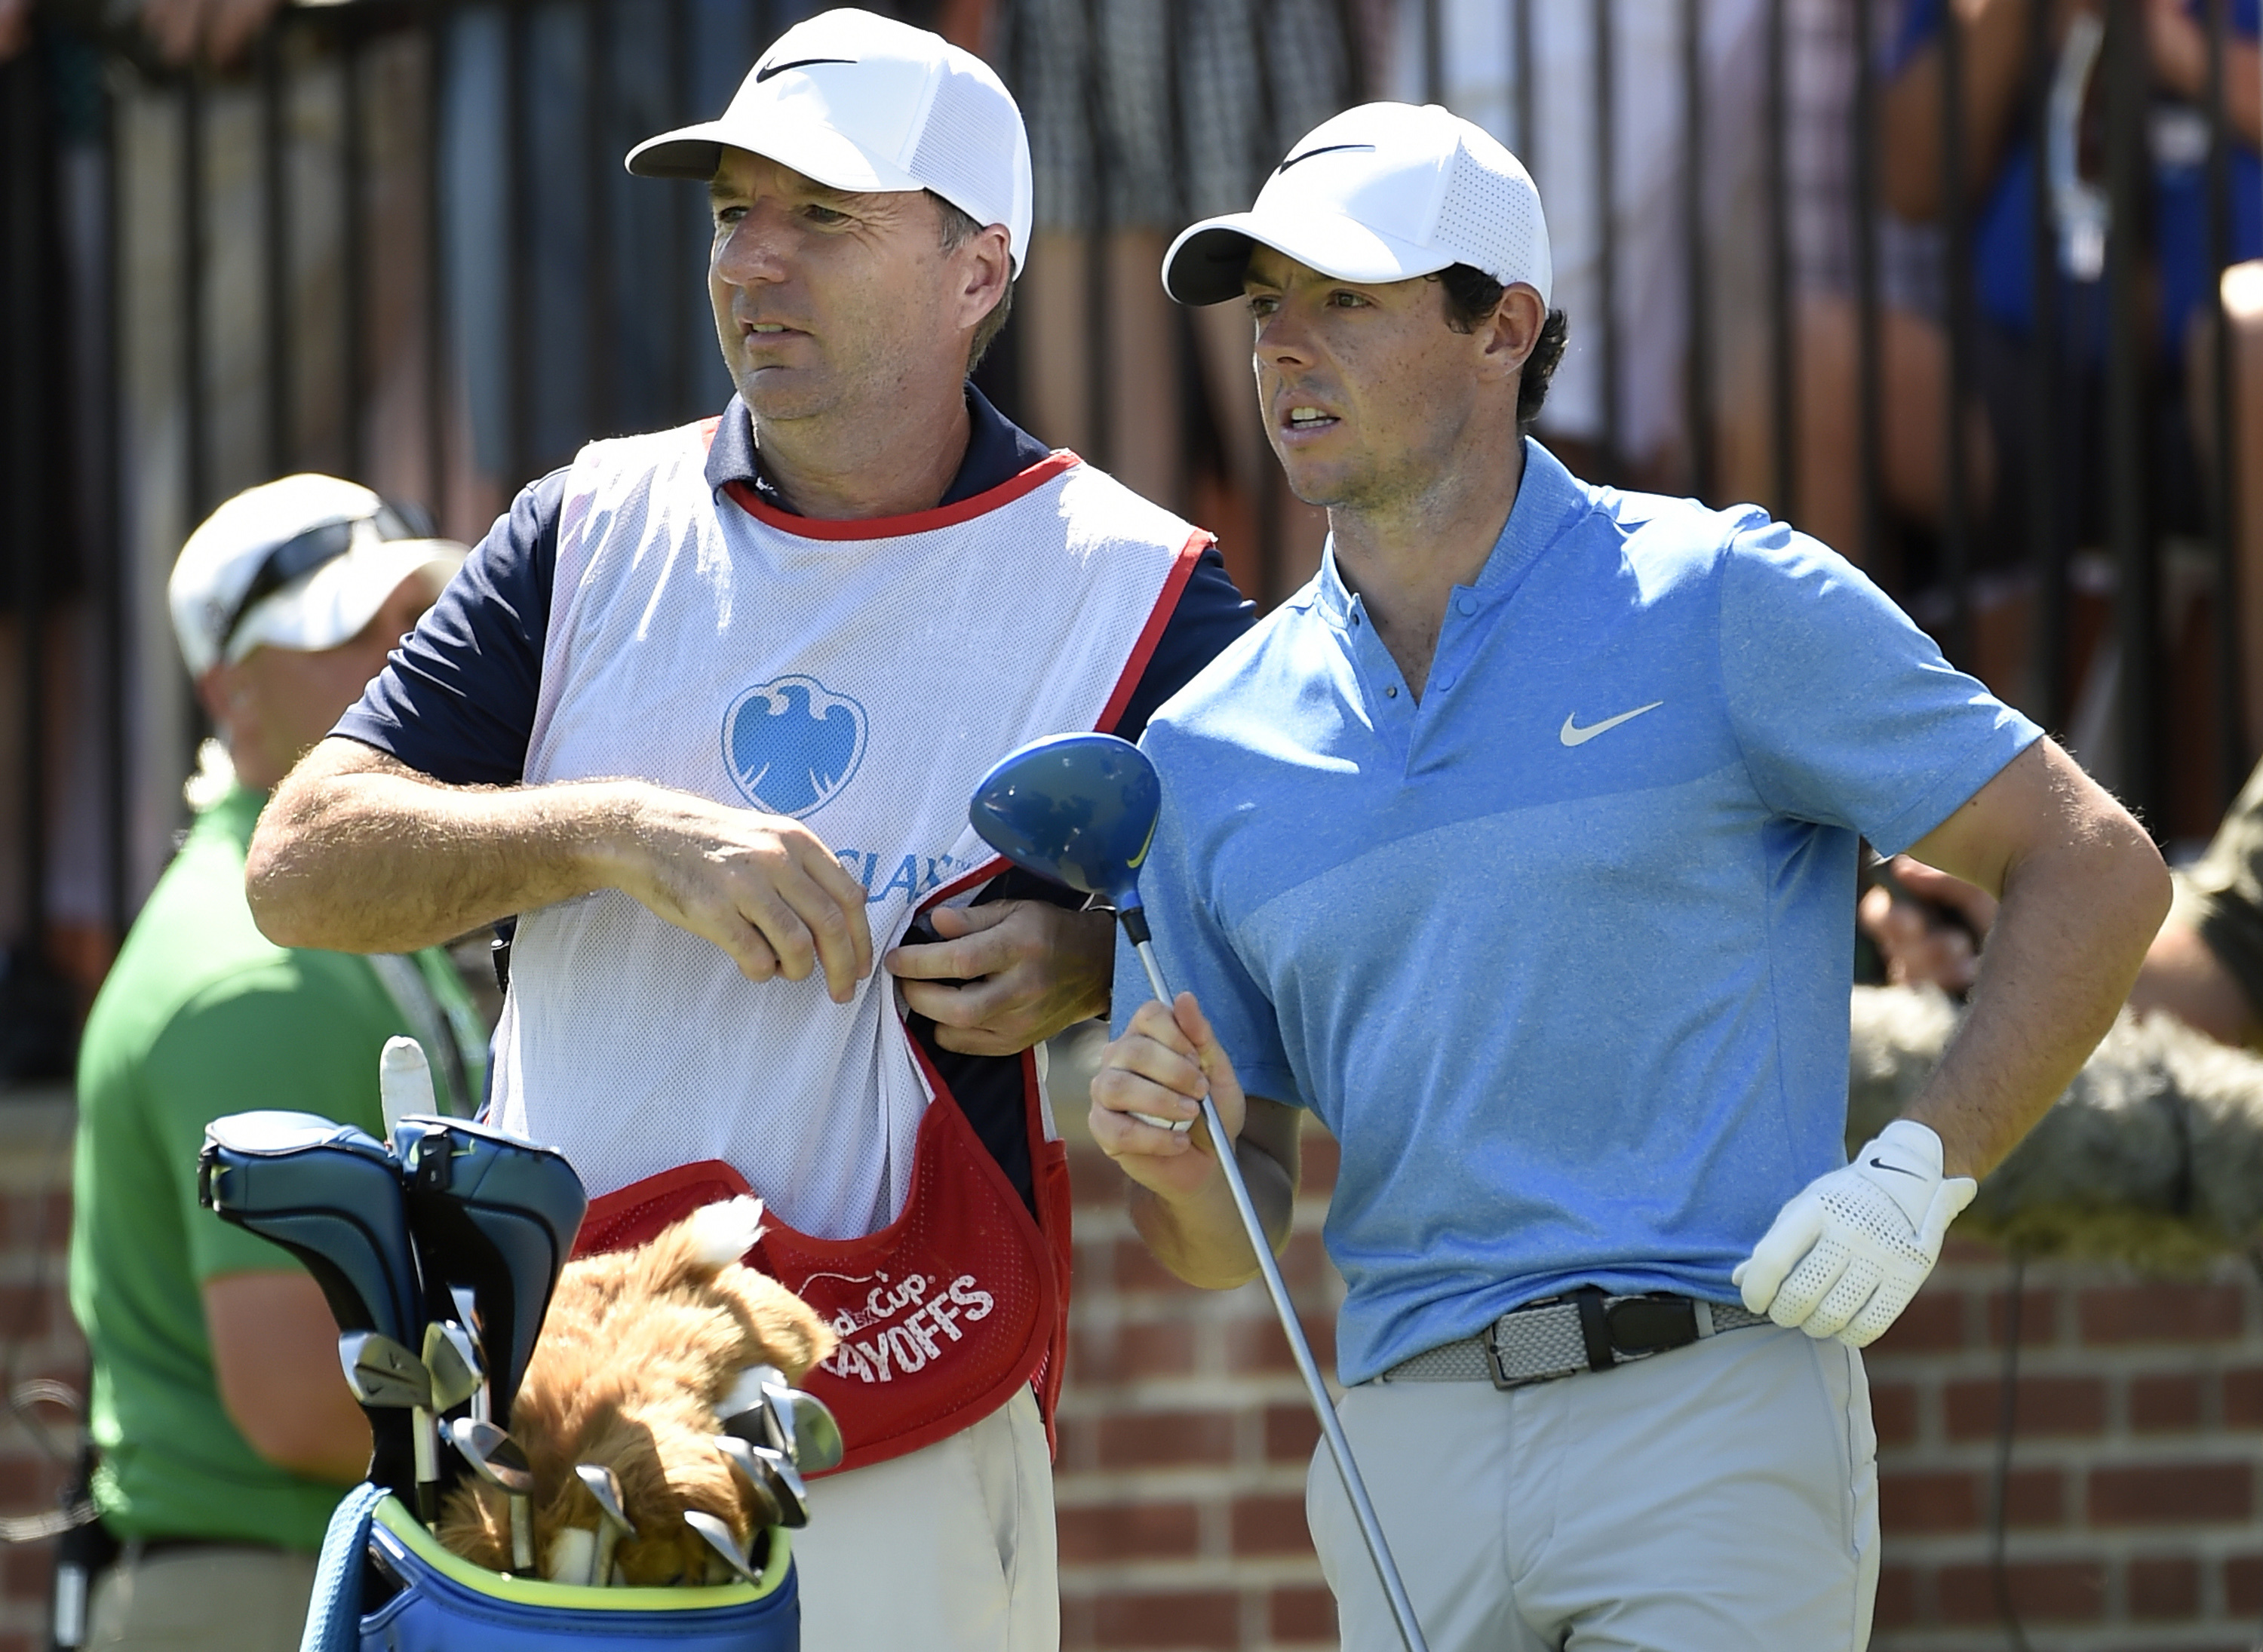 In this Aug. 28, 2016 photo, Rory McIlroy of Northern Ireland, right,  and his caddy, J. P. Fitzgerald look down the fairway before McIlroy tees off from the first hole during the final round of The Barclays golf tournament in Farmingdale, N.Y..  McIlroy